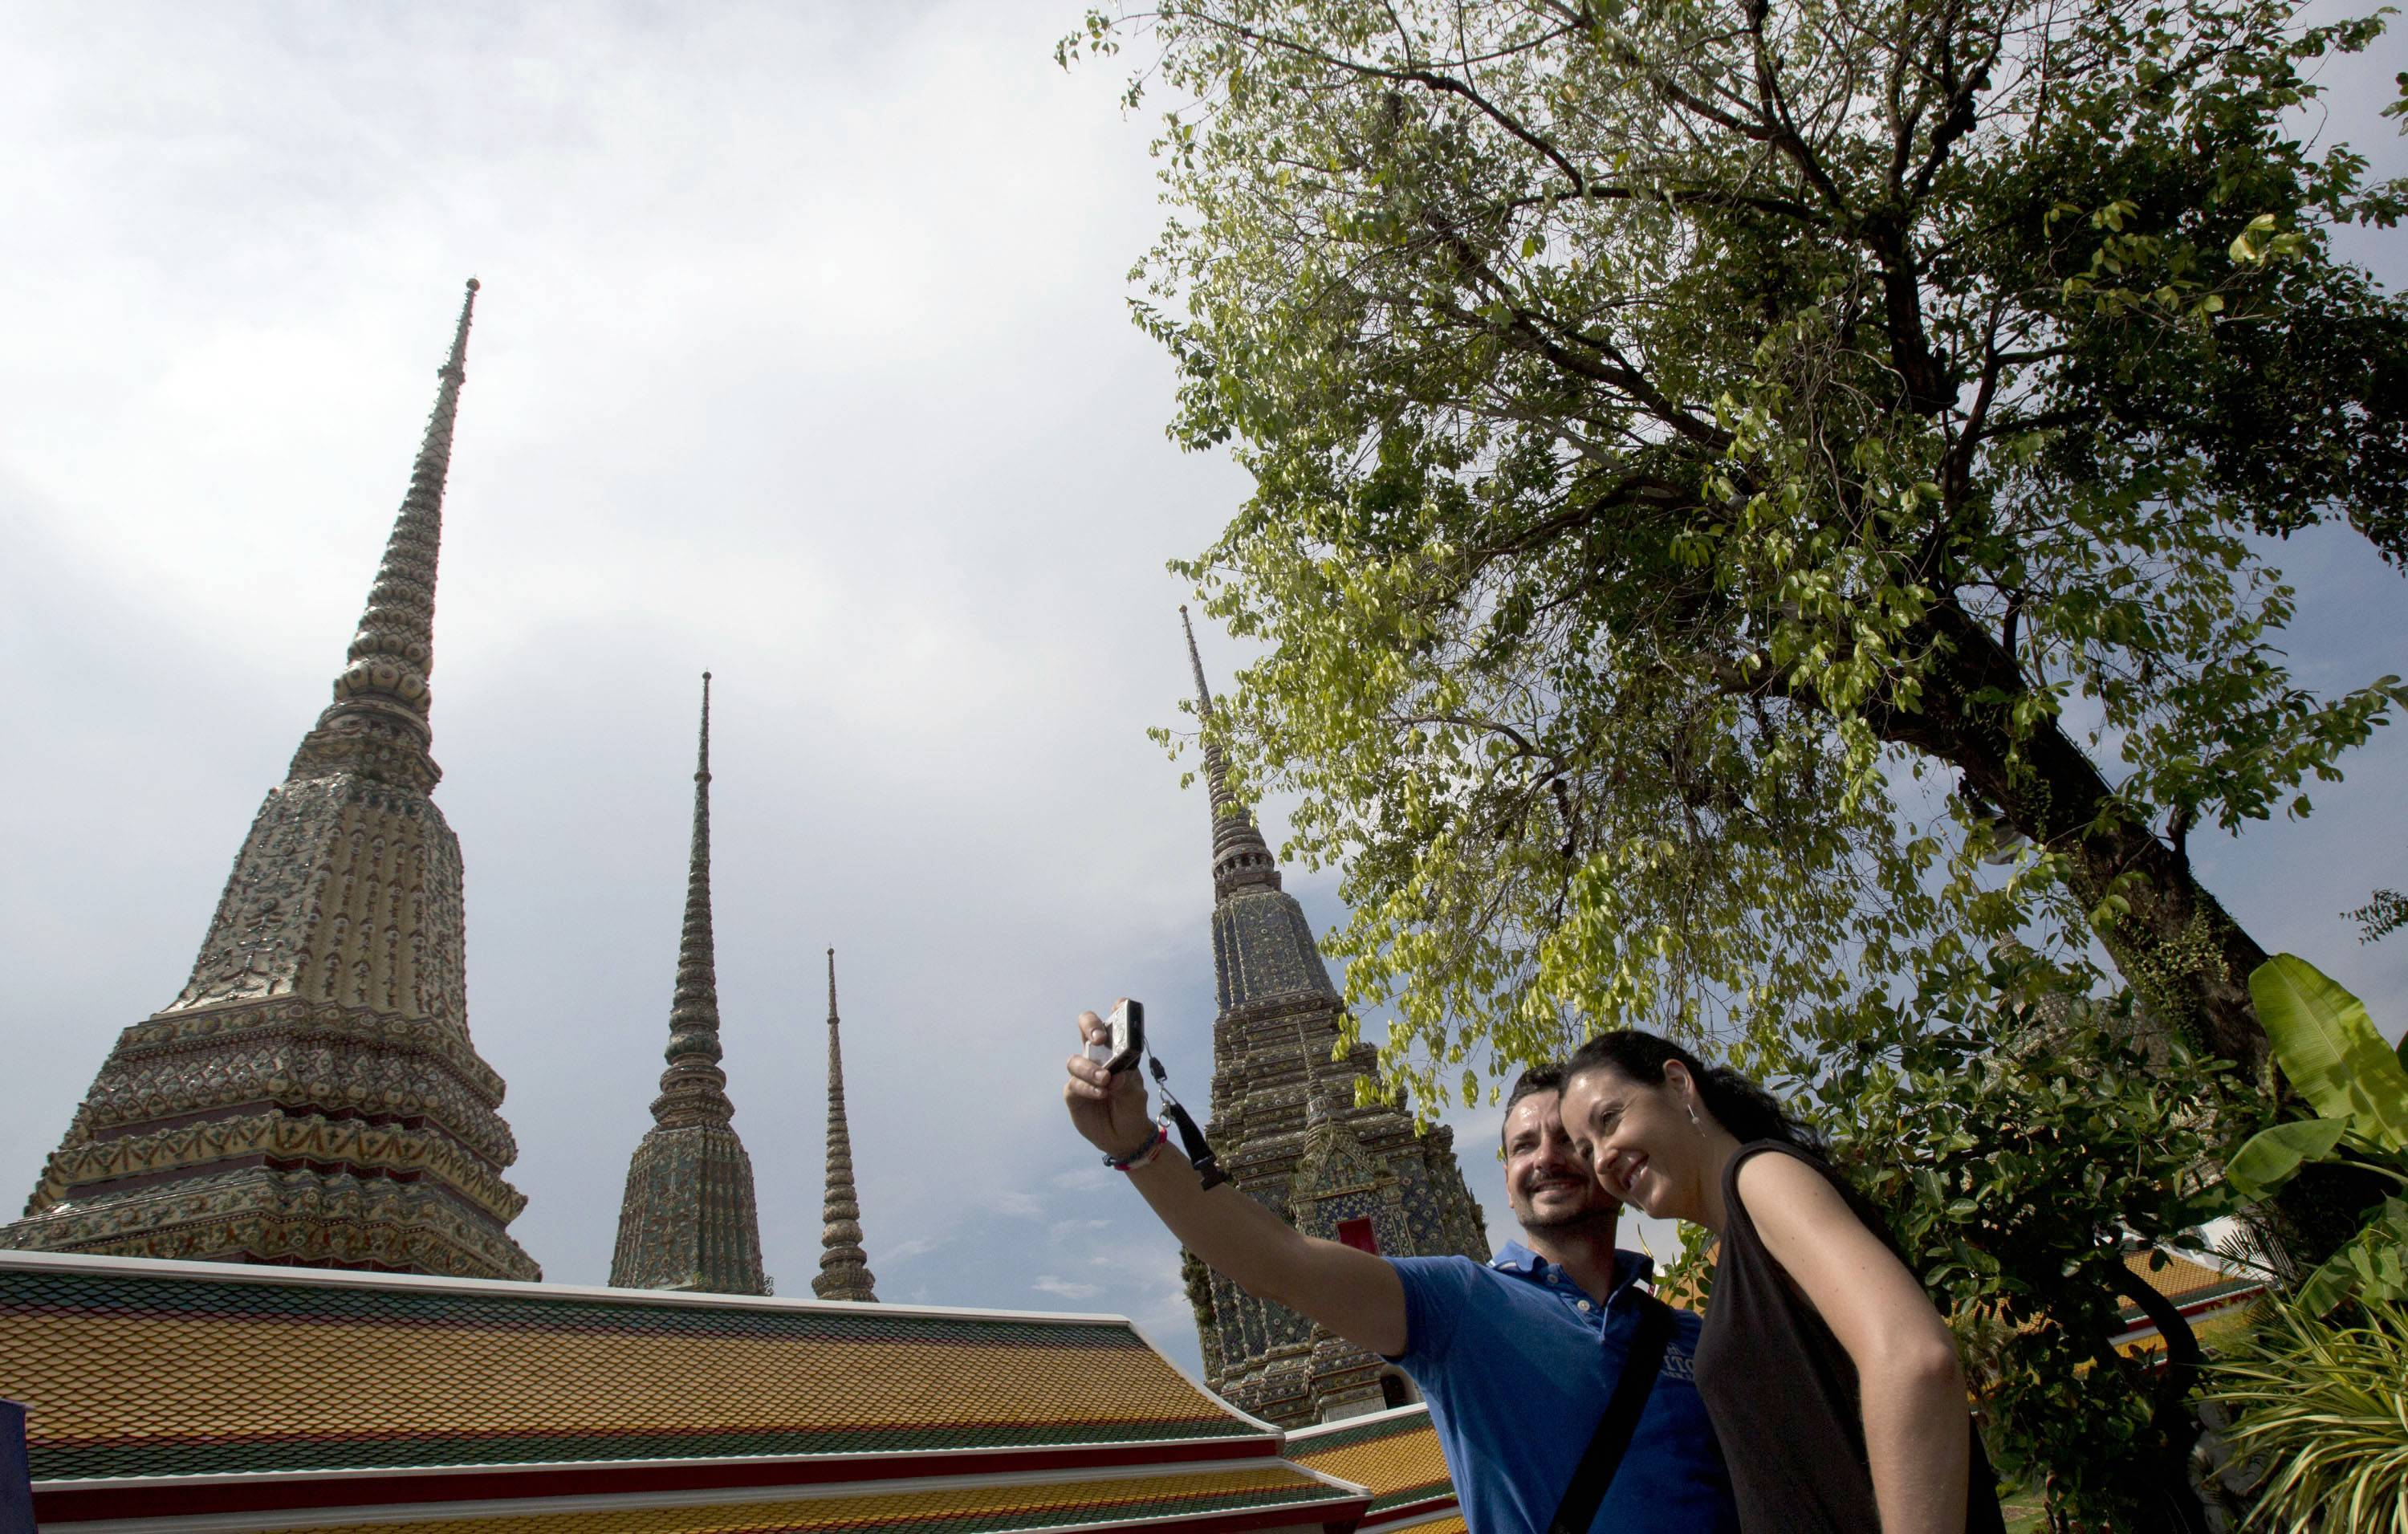 A couple of Western tourists snap a souvenir photo at a Wat Pho temple in Bangkok, Thailand Tuesday, May 27, 2014. The drama of Thailand's military takeover has played out mainly in the political arena. The main impact on visitors for now is a 10 p.m. curfew.